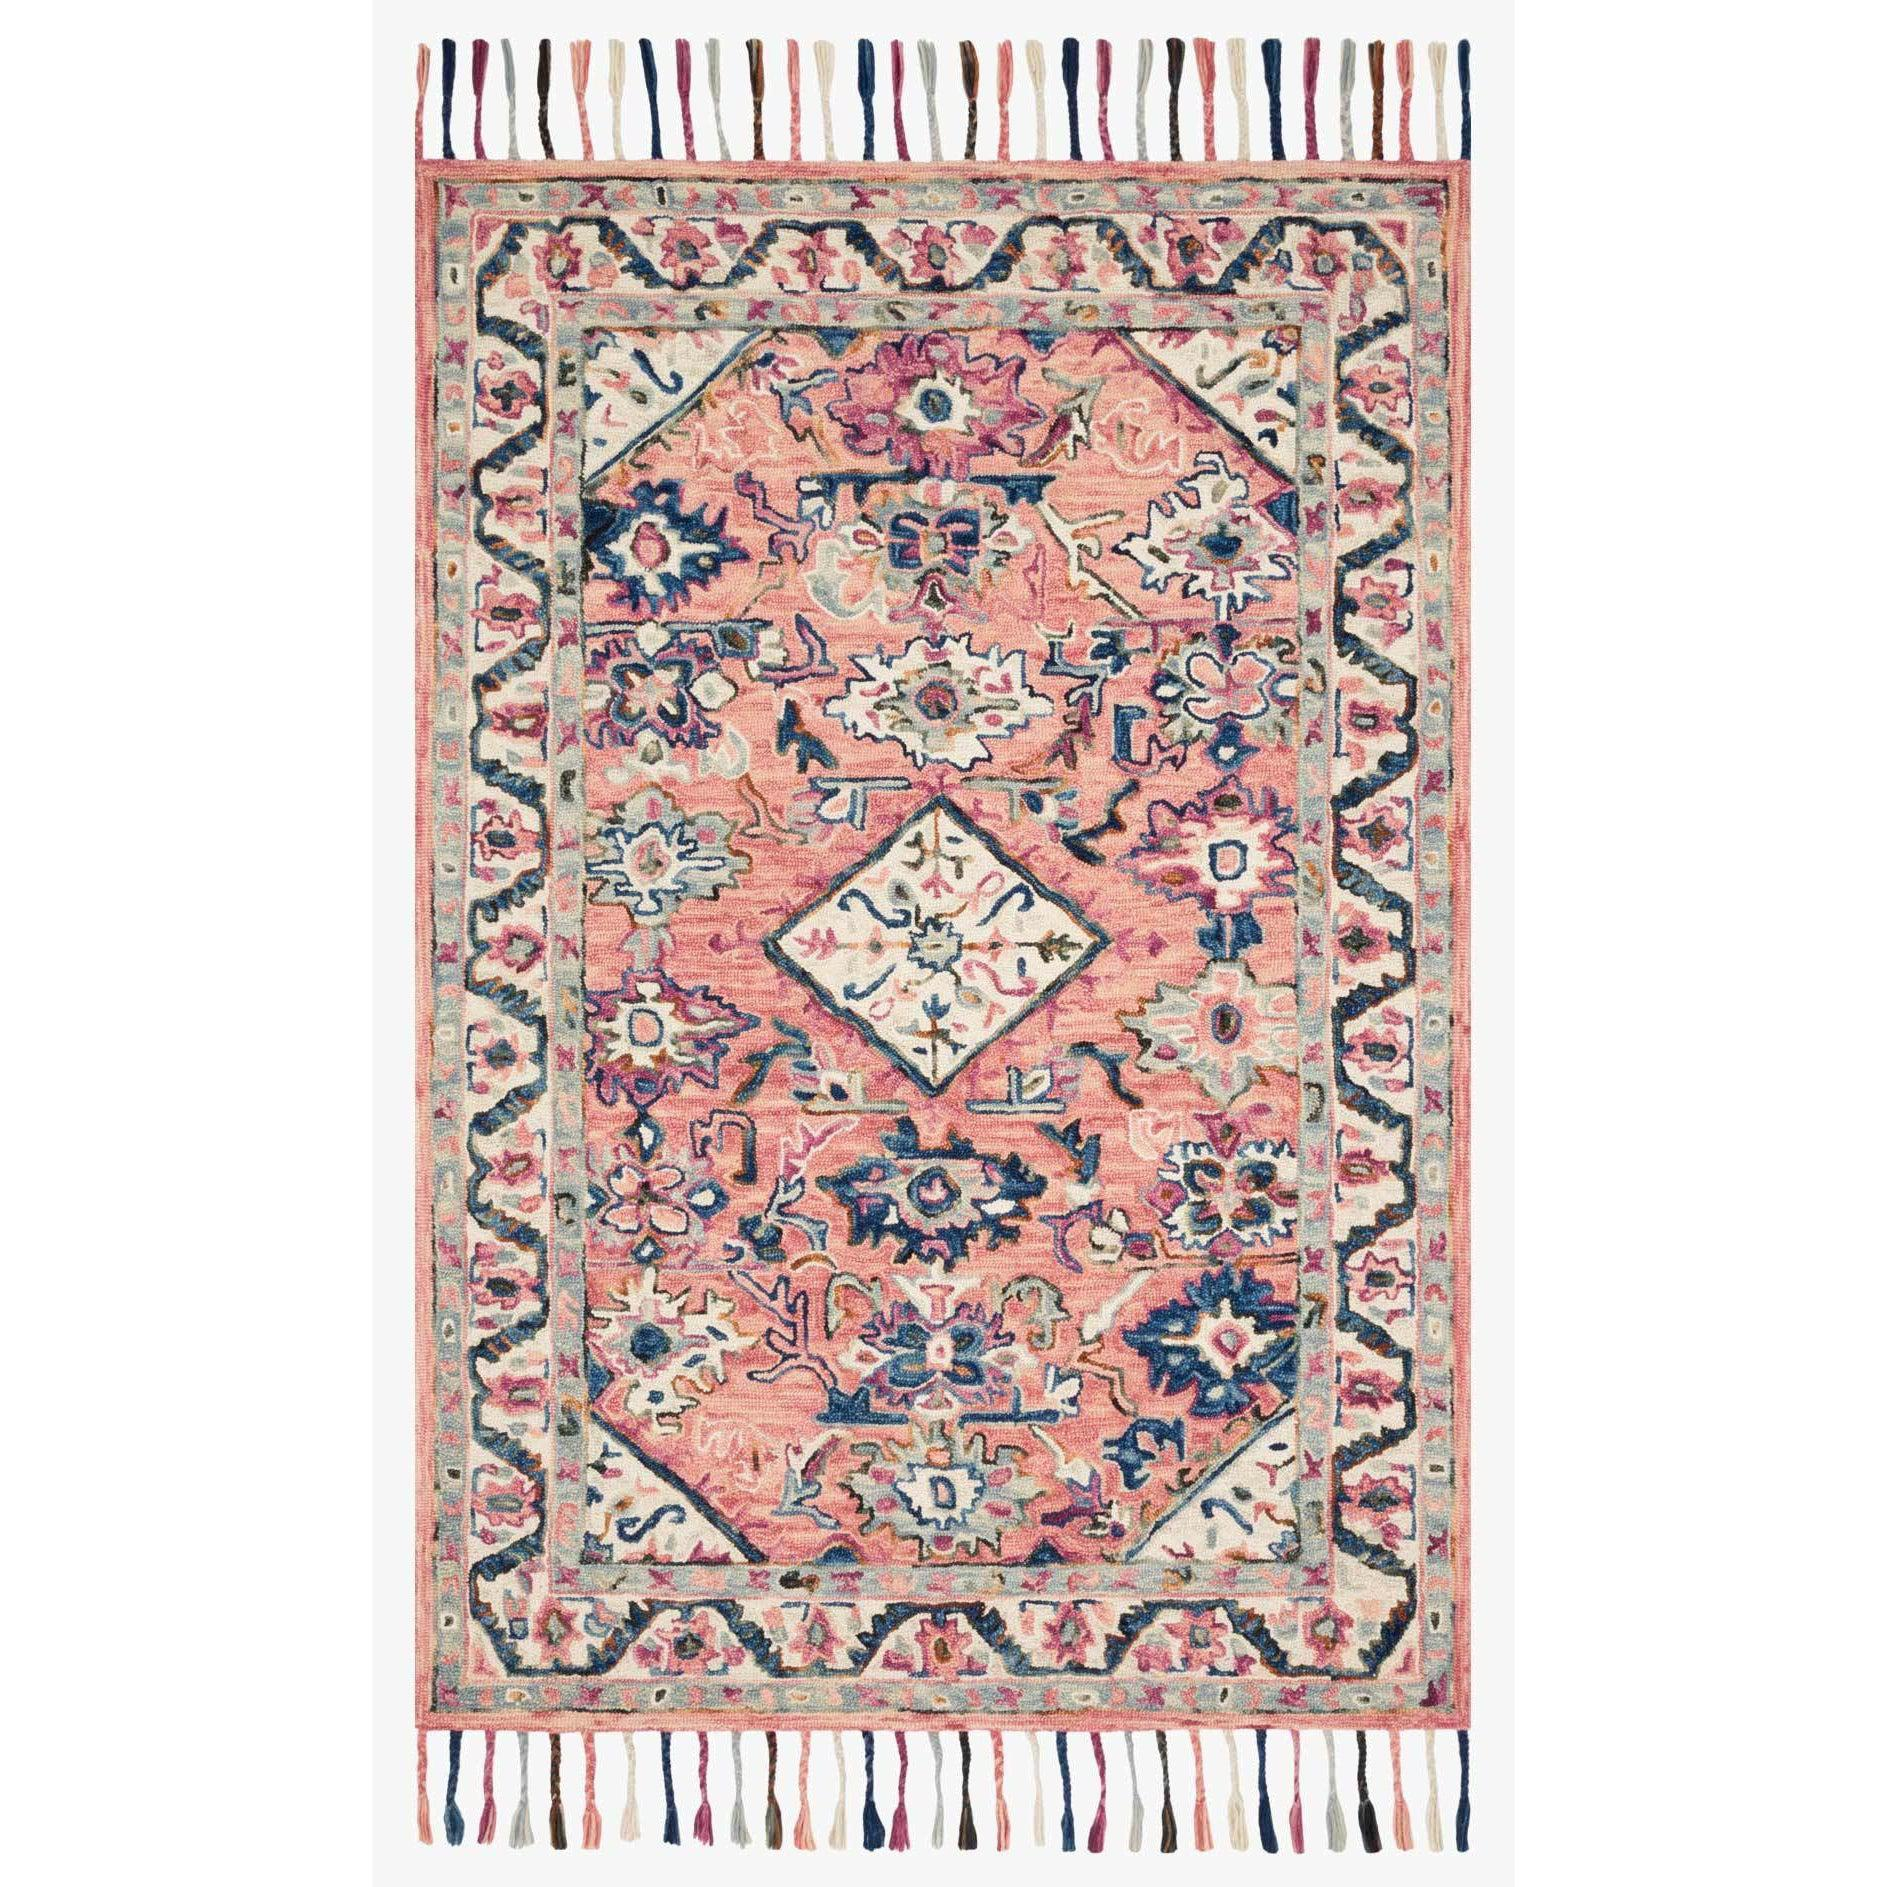 Elka Rugs by Loloi - ELK-04 - Pink / Multi-Loloi Rugs-Blue Hand Home